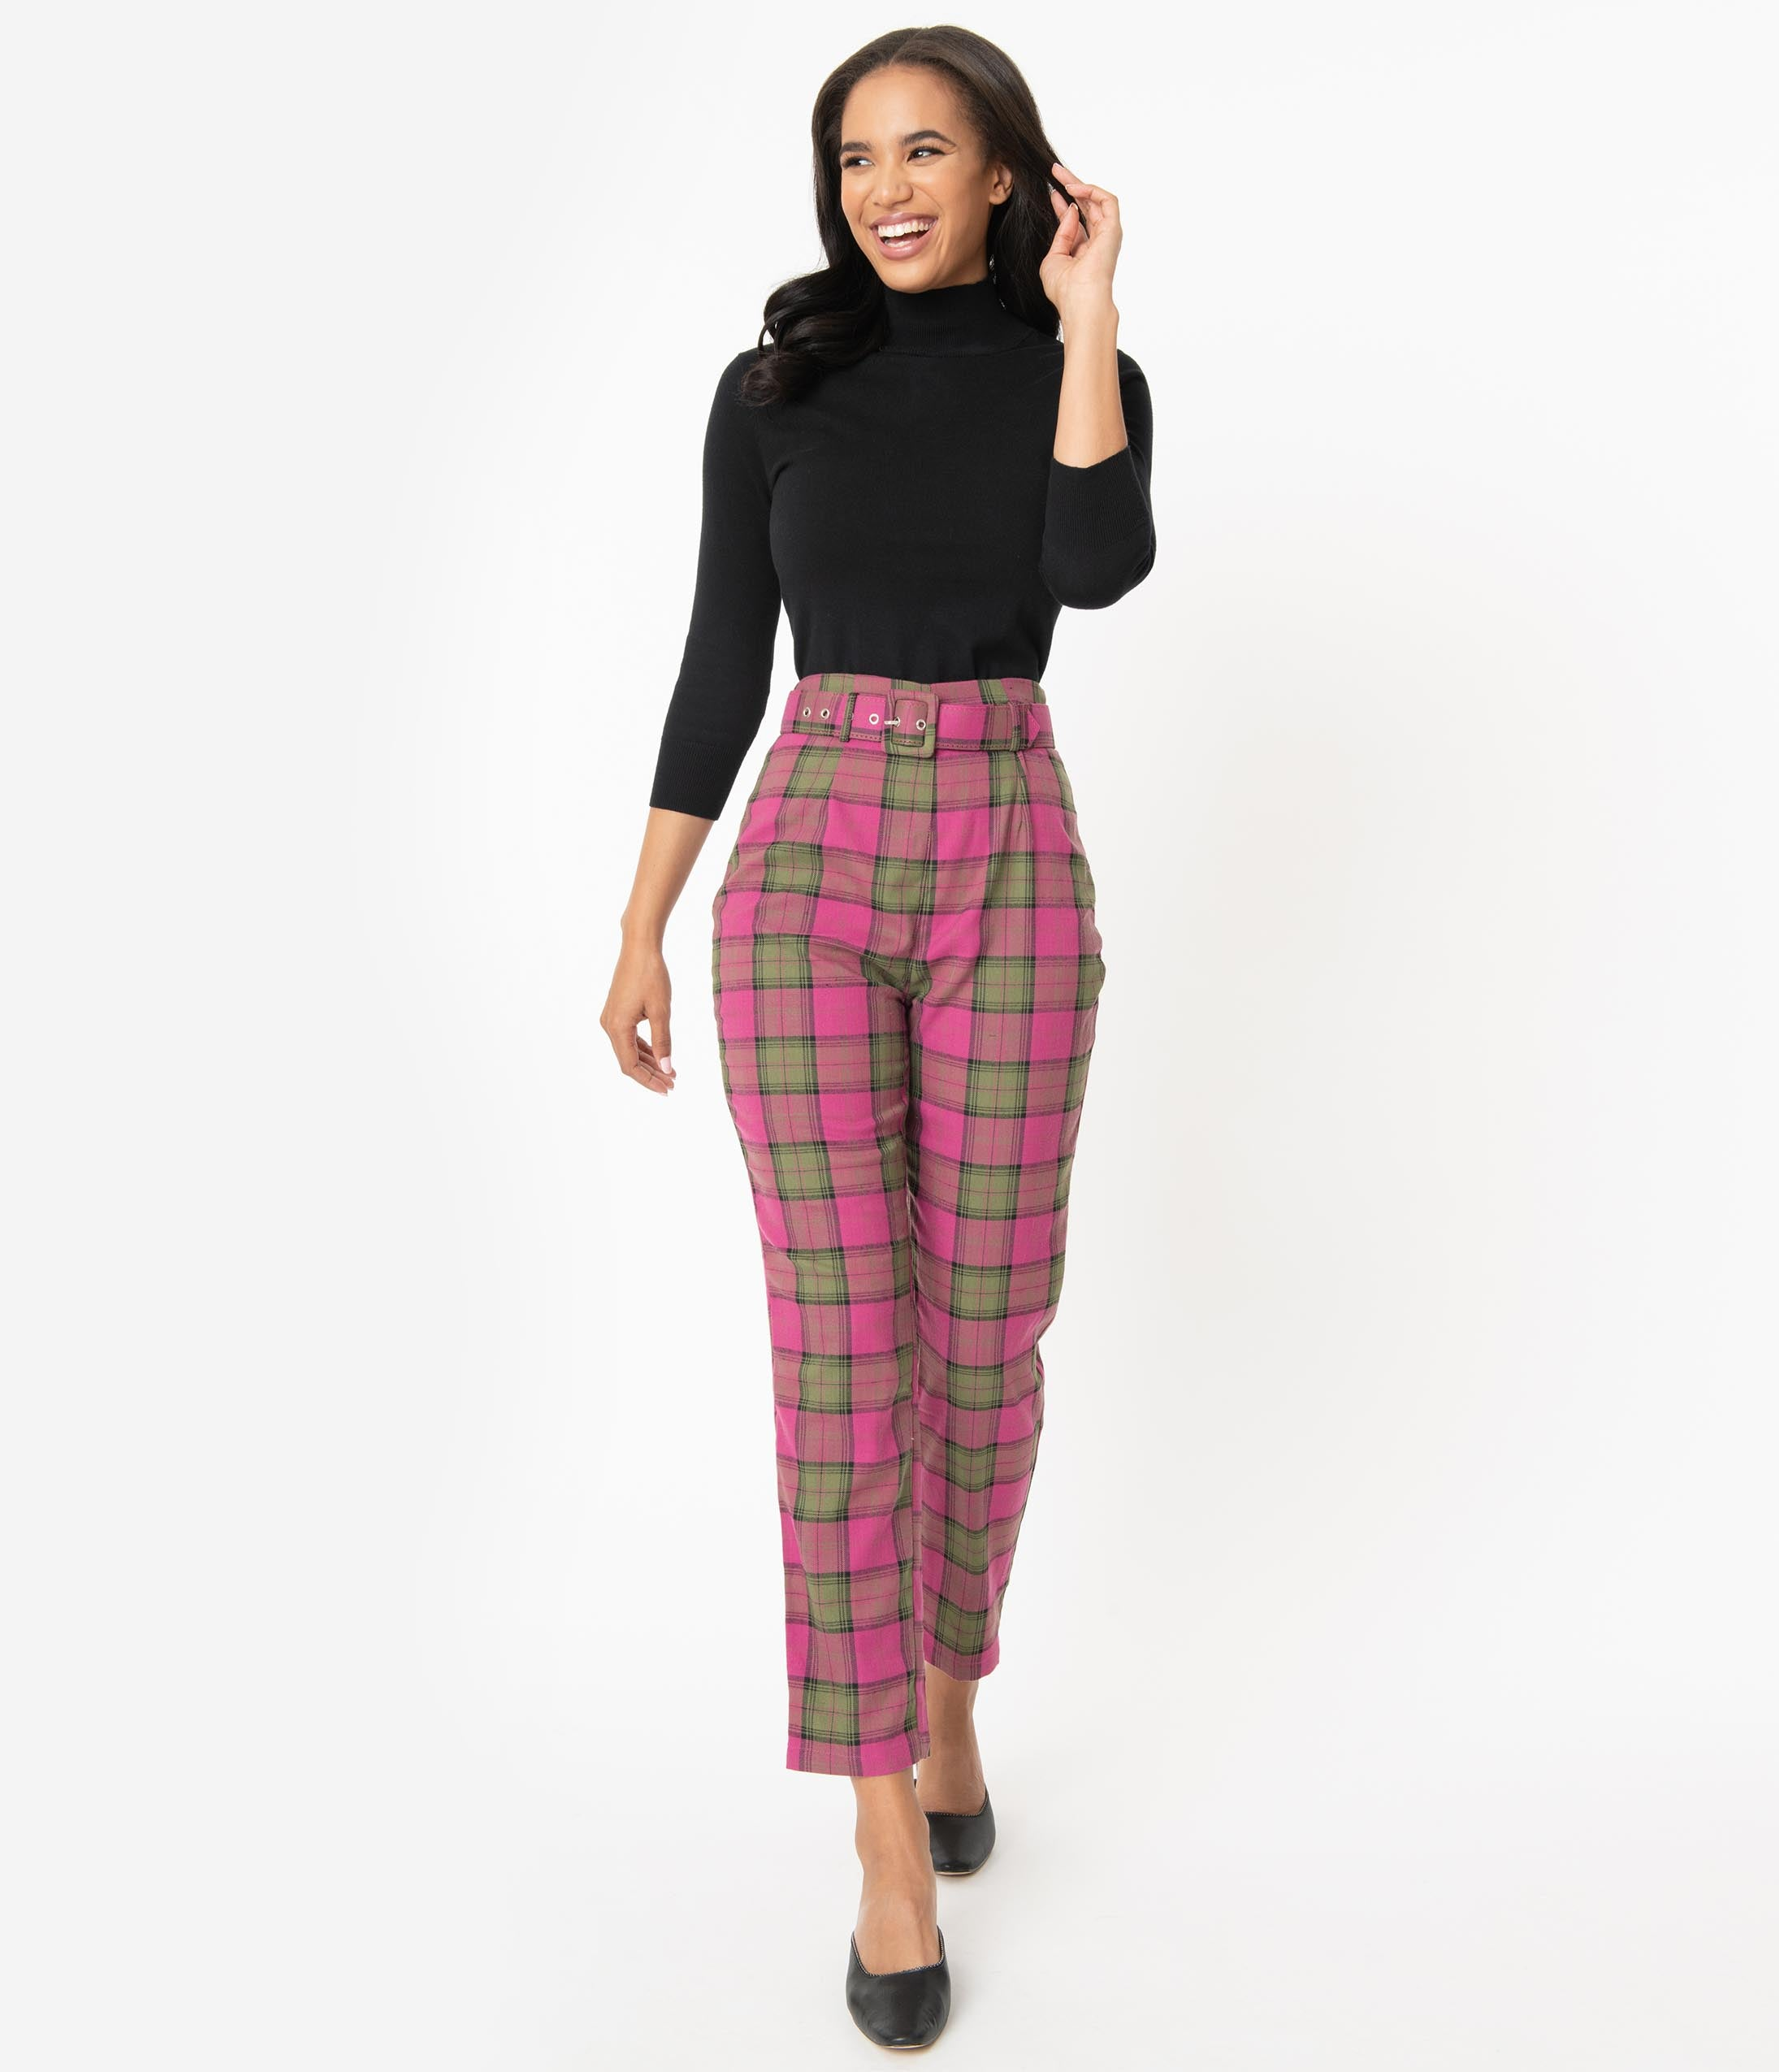 Vintage High Waisted Trousers, Sailor Pants, Jeans Collectif Fuchsia Pink  Olive Sassy Plaid Thea Pants $68.00 AT vintagedancer.com